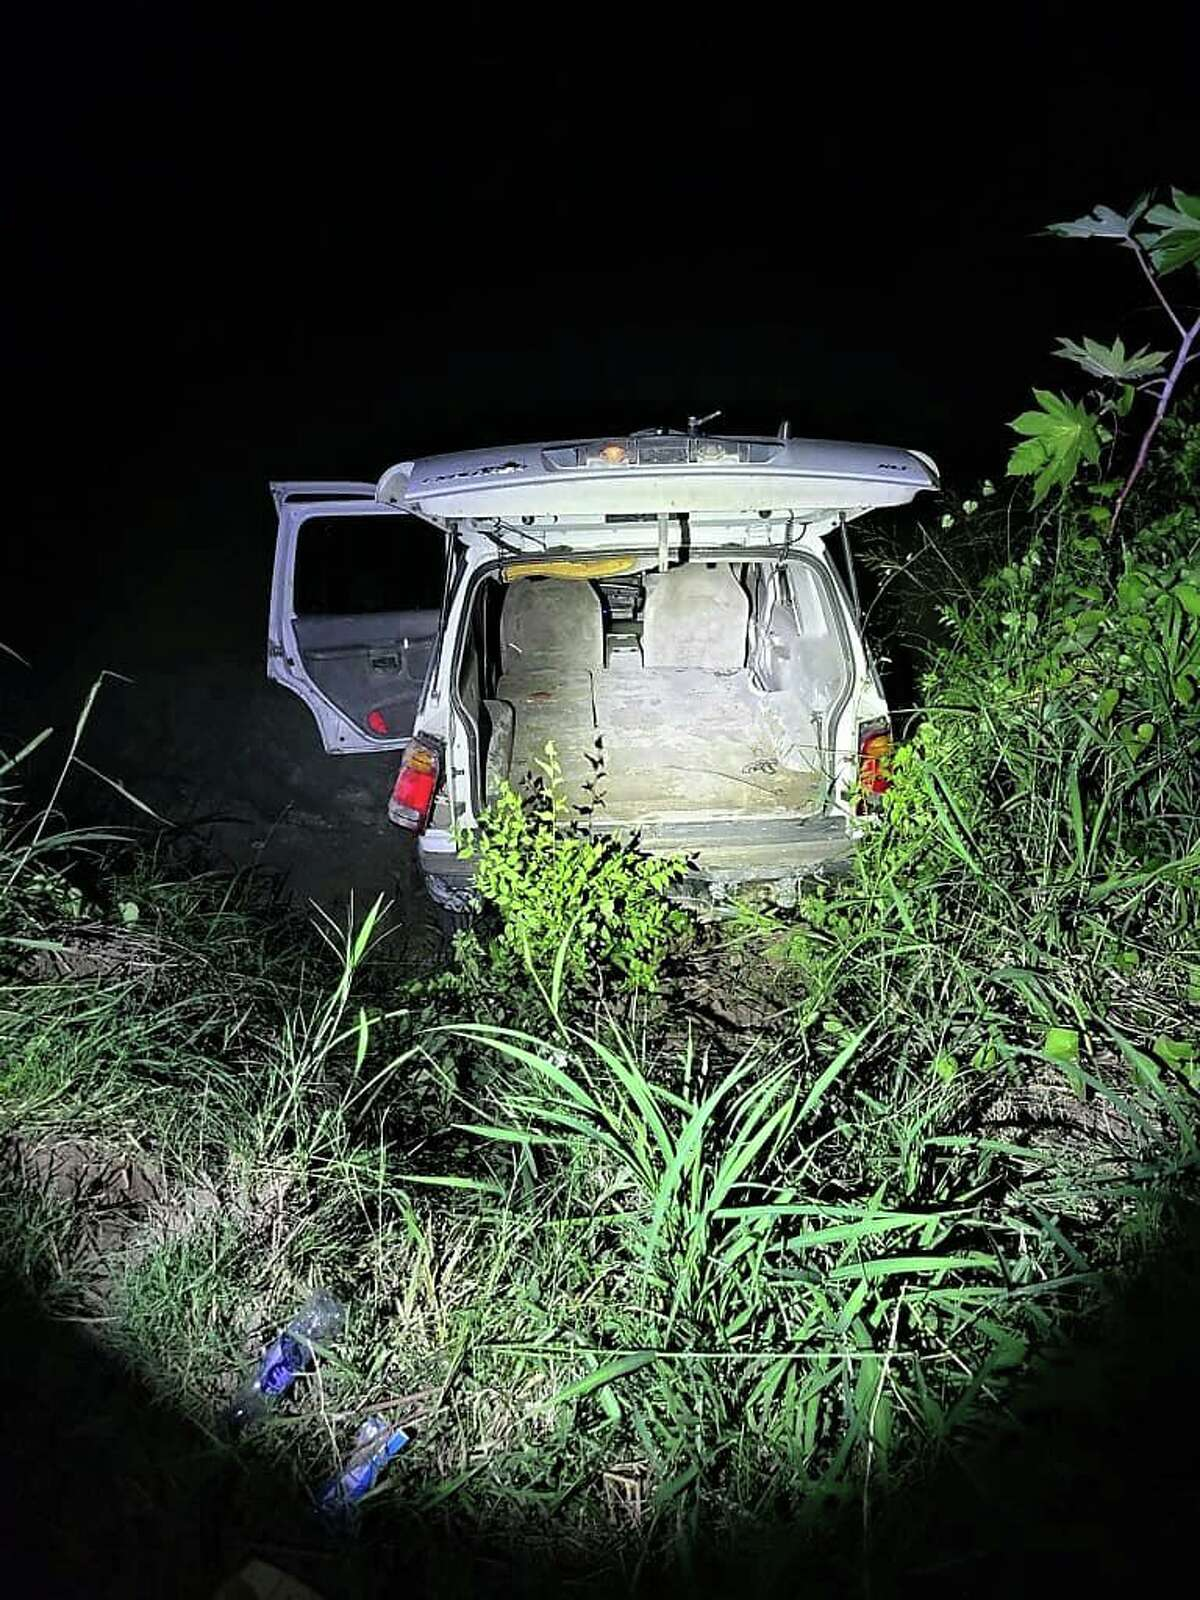 U.S. Border Patrol agents said this vehicle went into the Rio Grande in El Cenizo. Authorities recovered two bundles of marijuana weighing 160 pounds. The contraband had an estimated street value of $134,000.